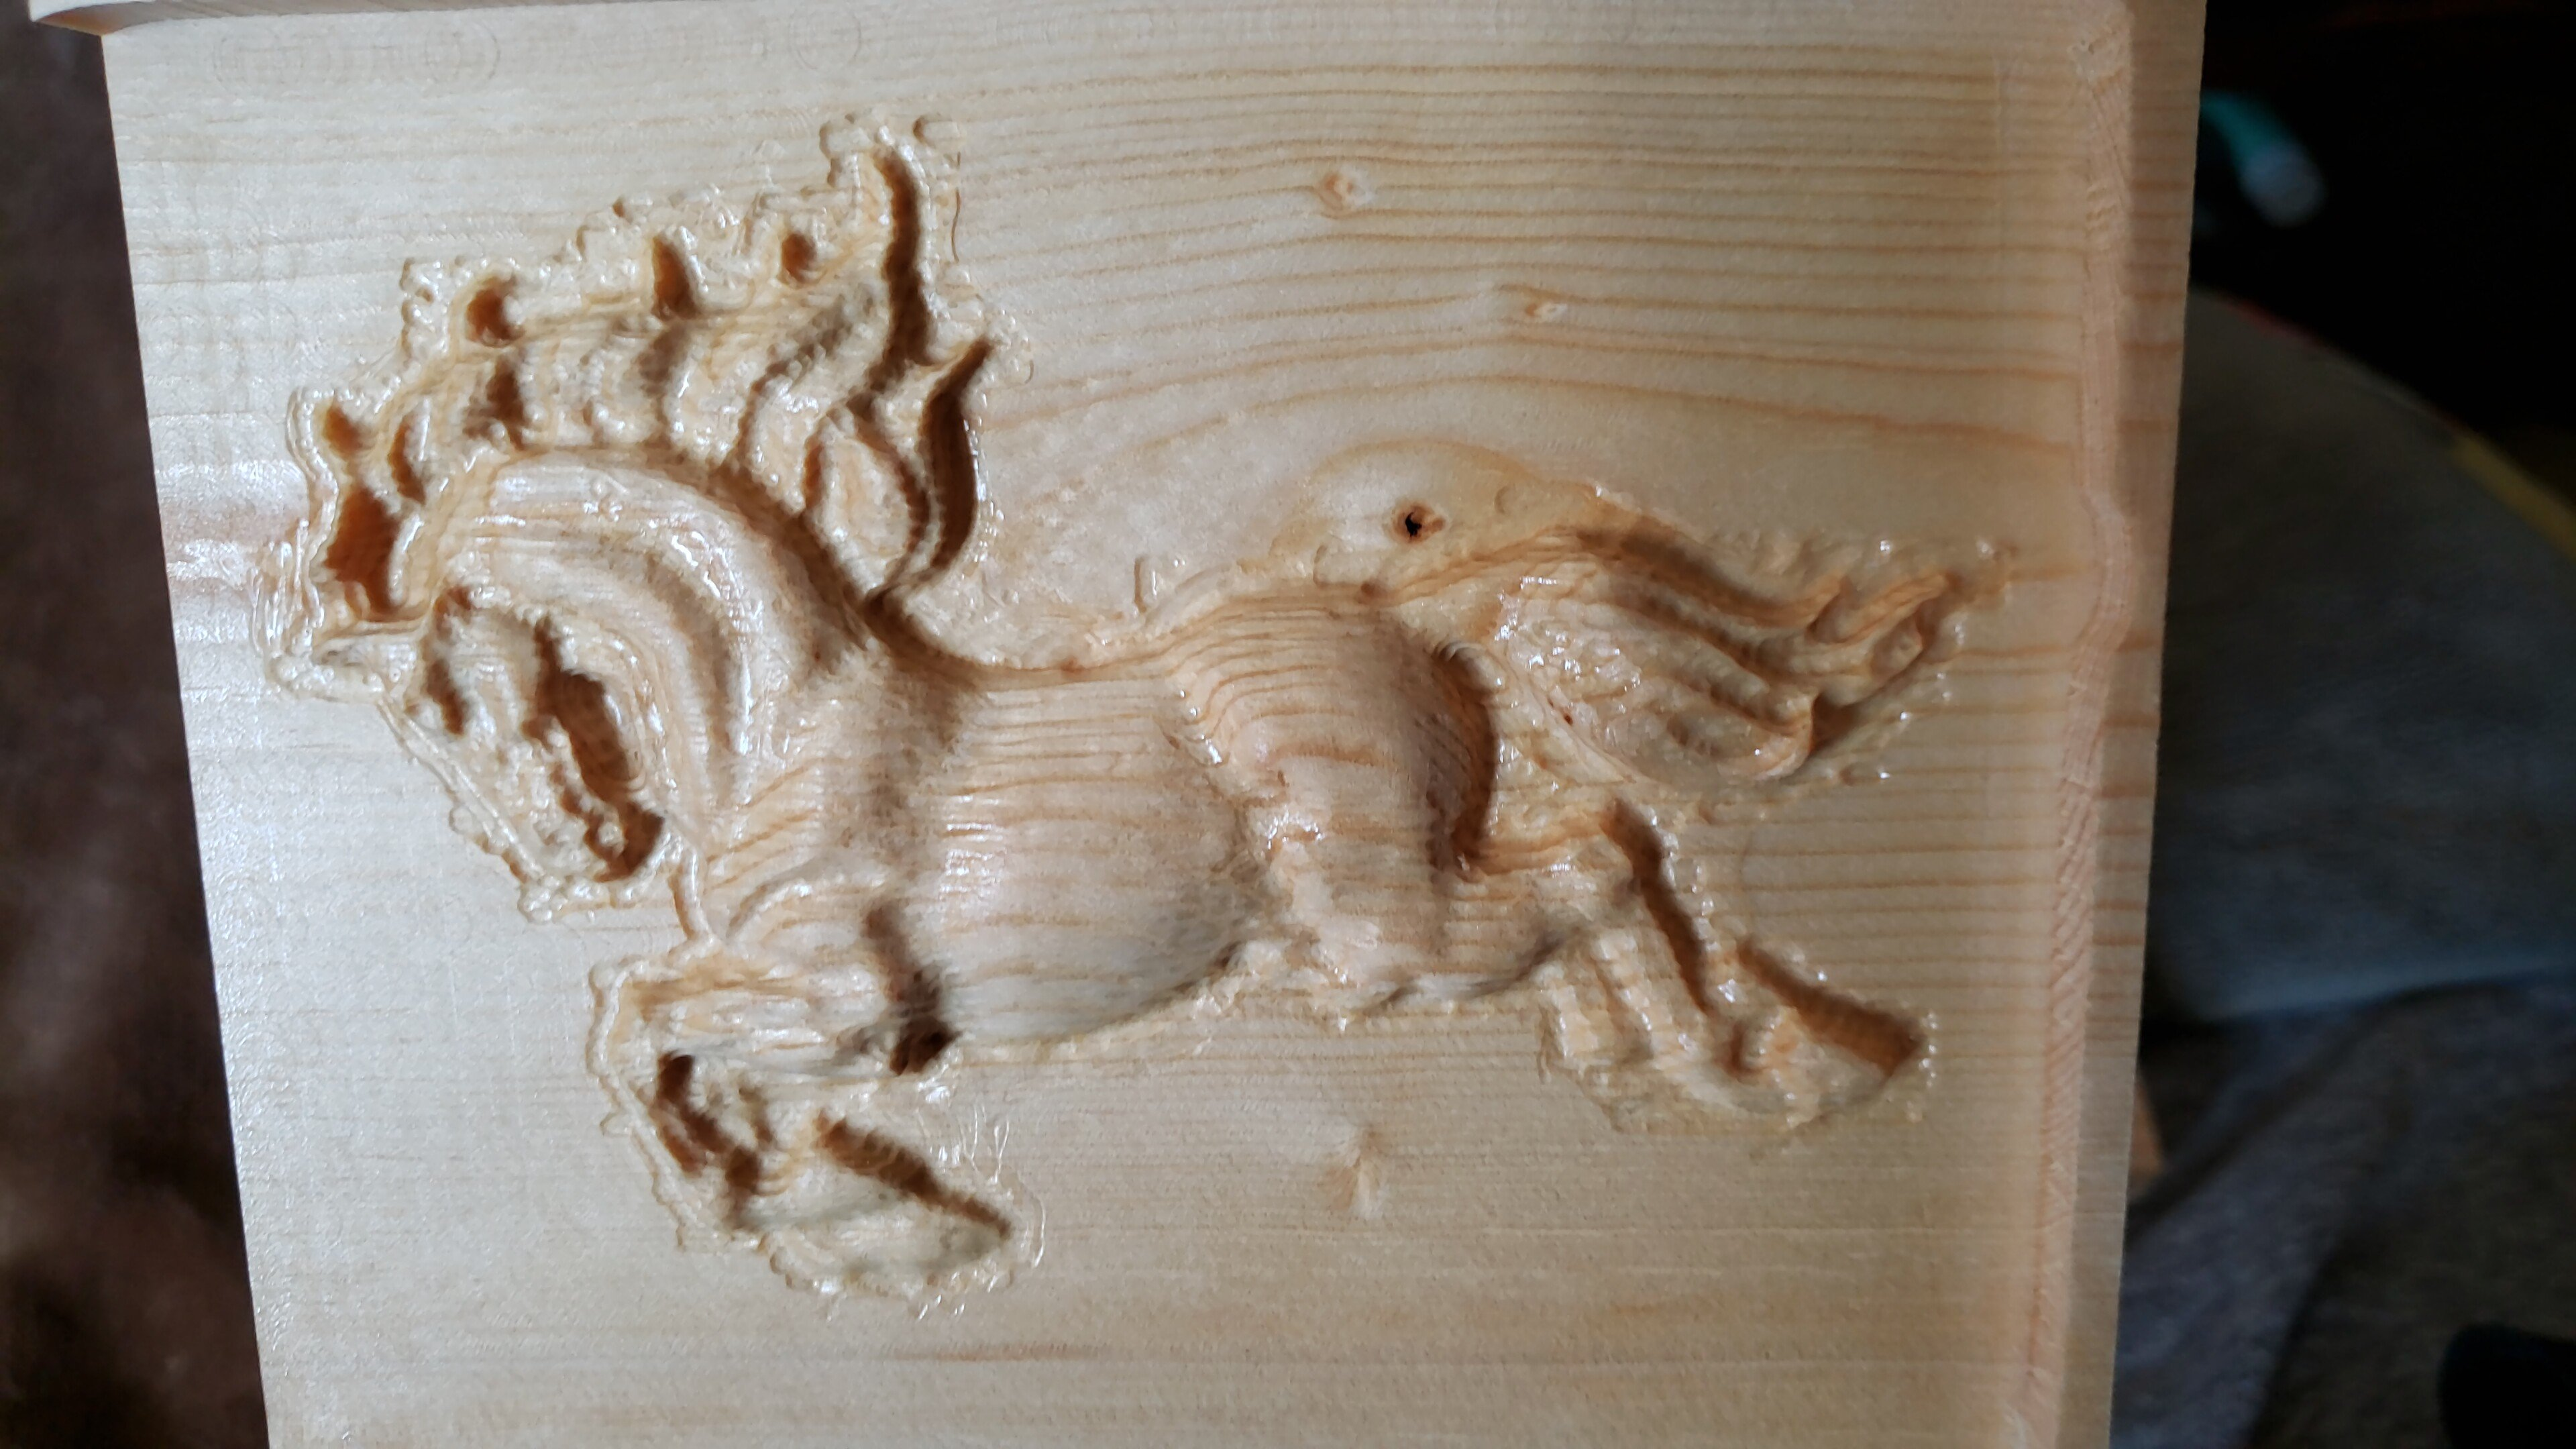 Relief carving v engineering